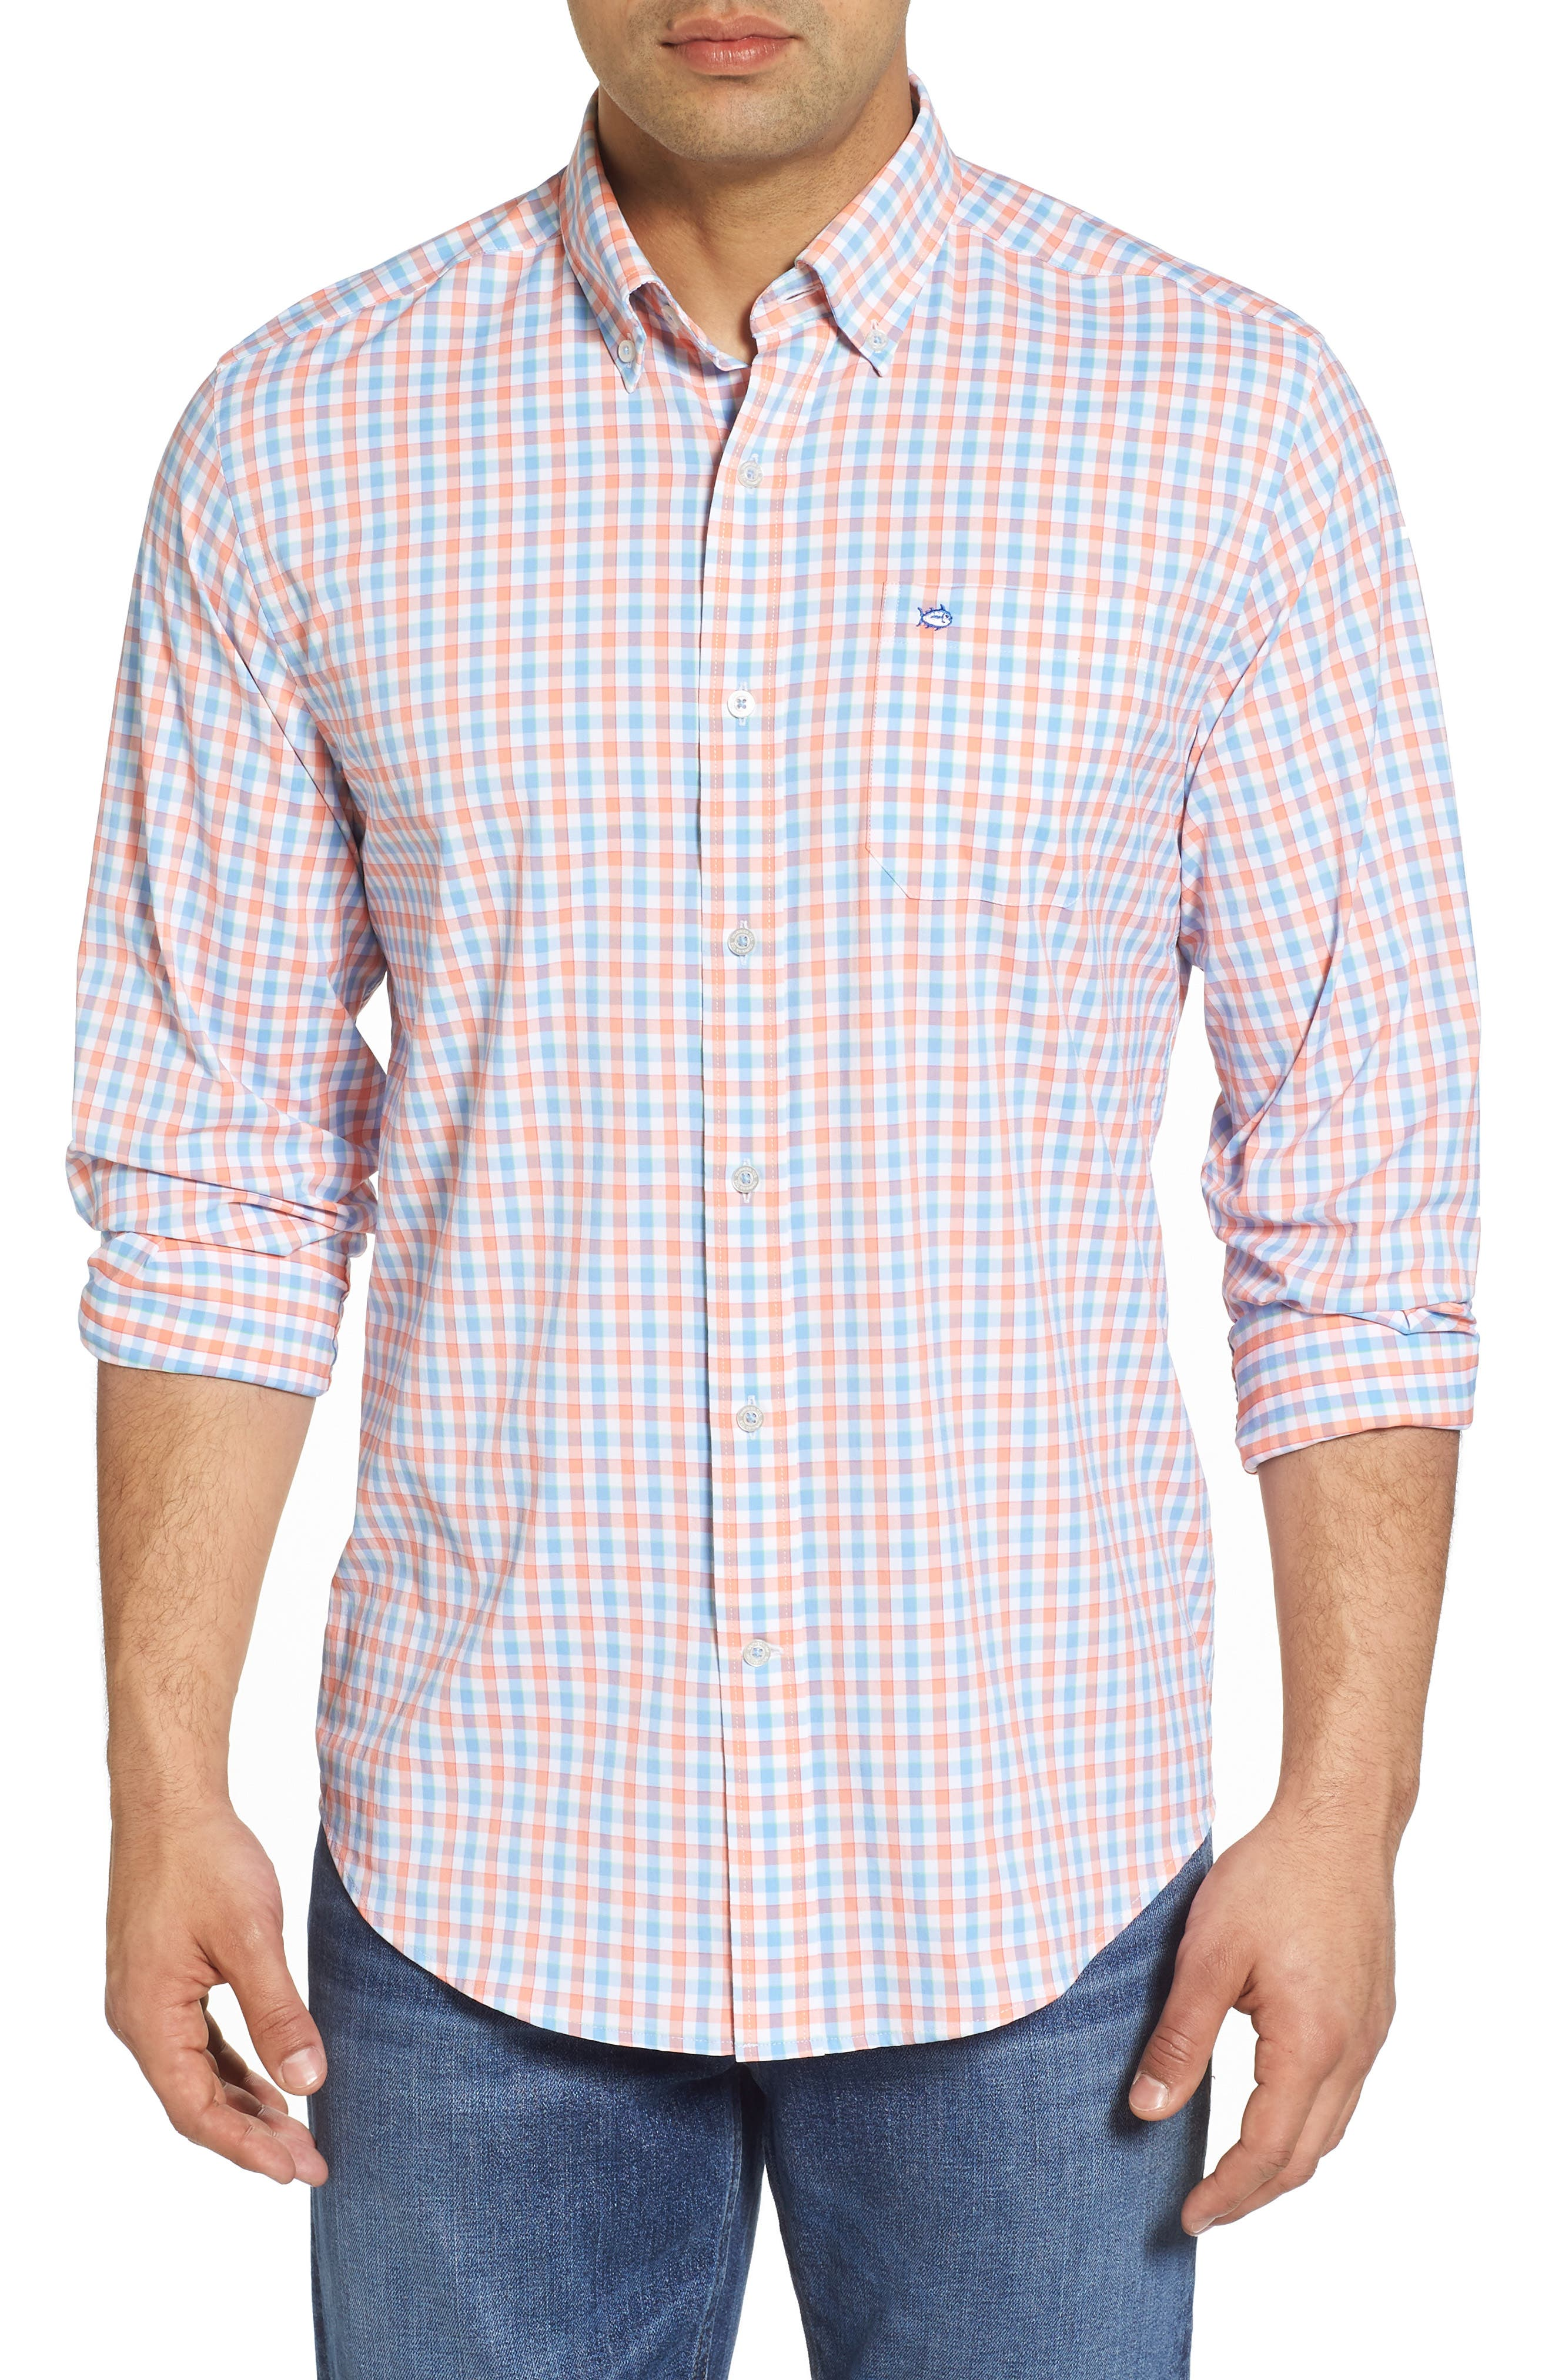 Market Square Regular Fit Stretch Check Sport Shirt,                             Main thumbnail 1, color,                             Nectar Coral